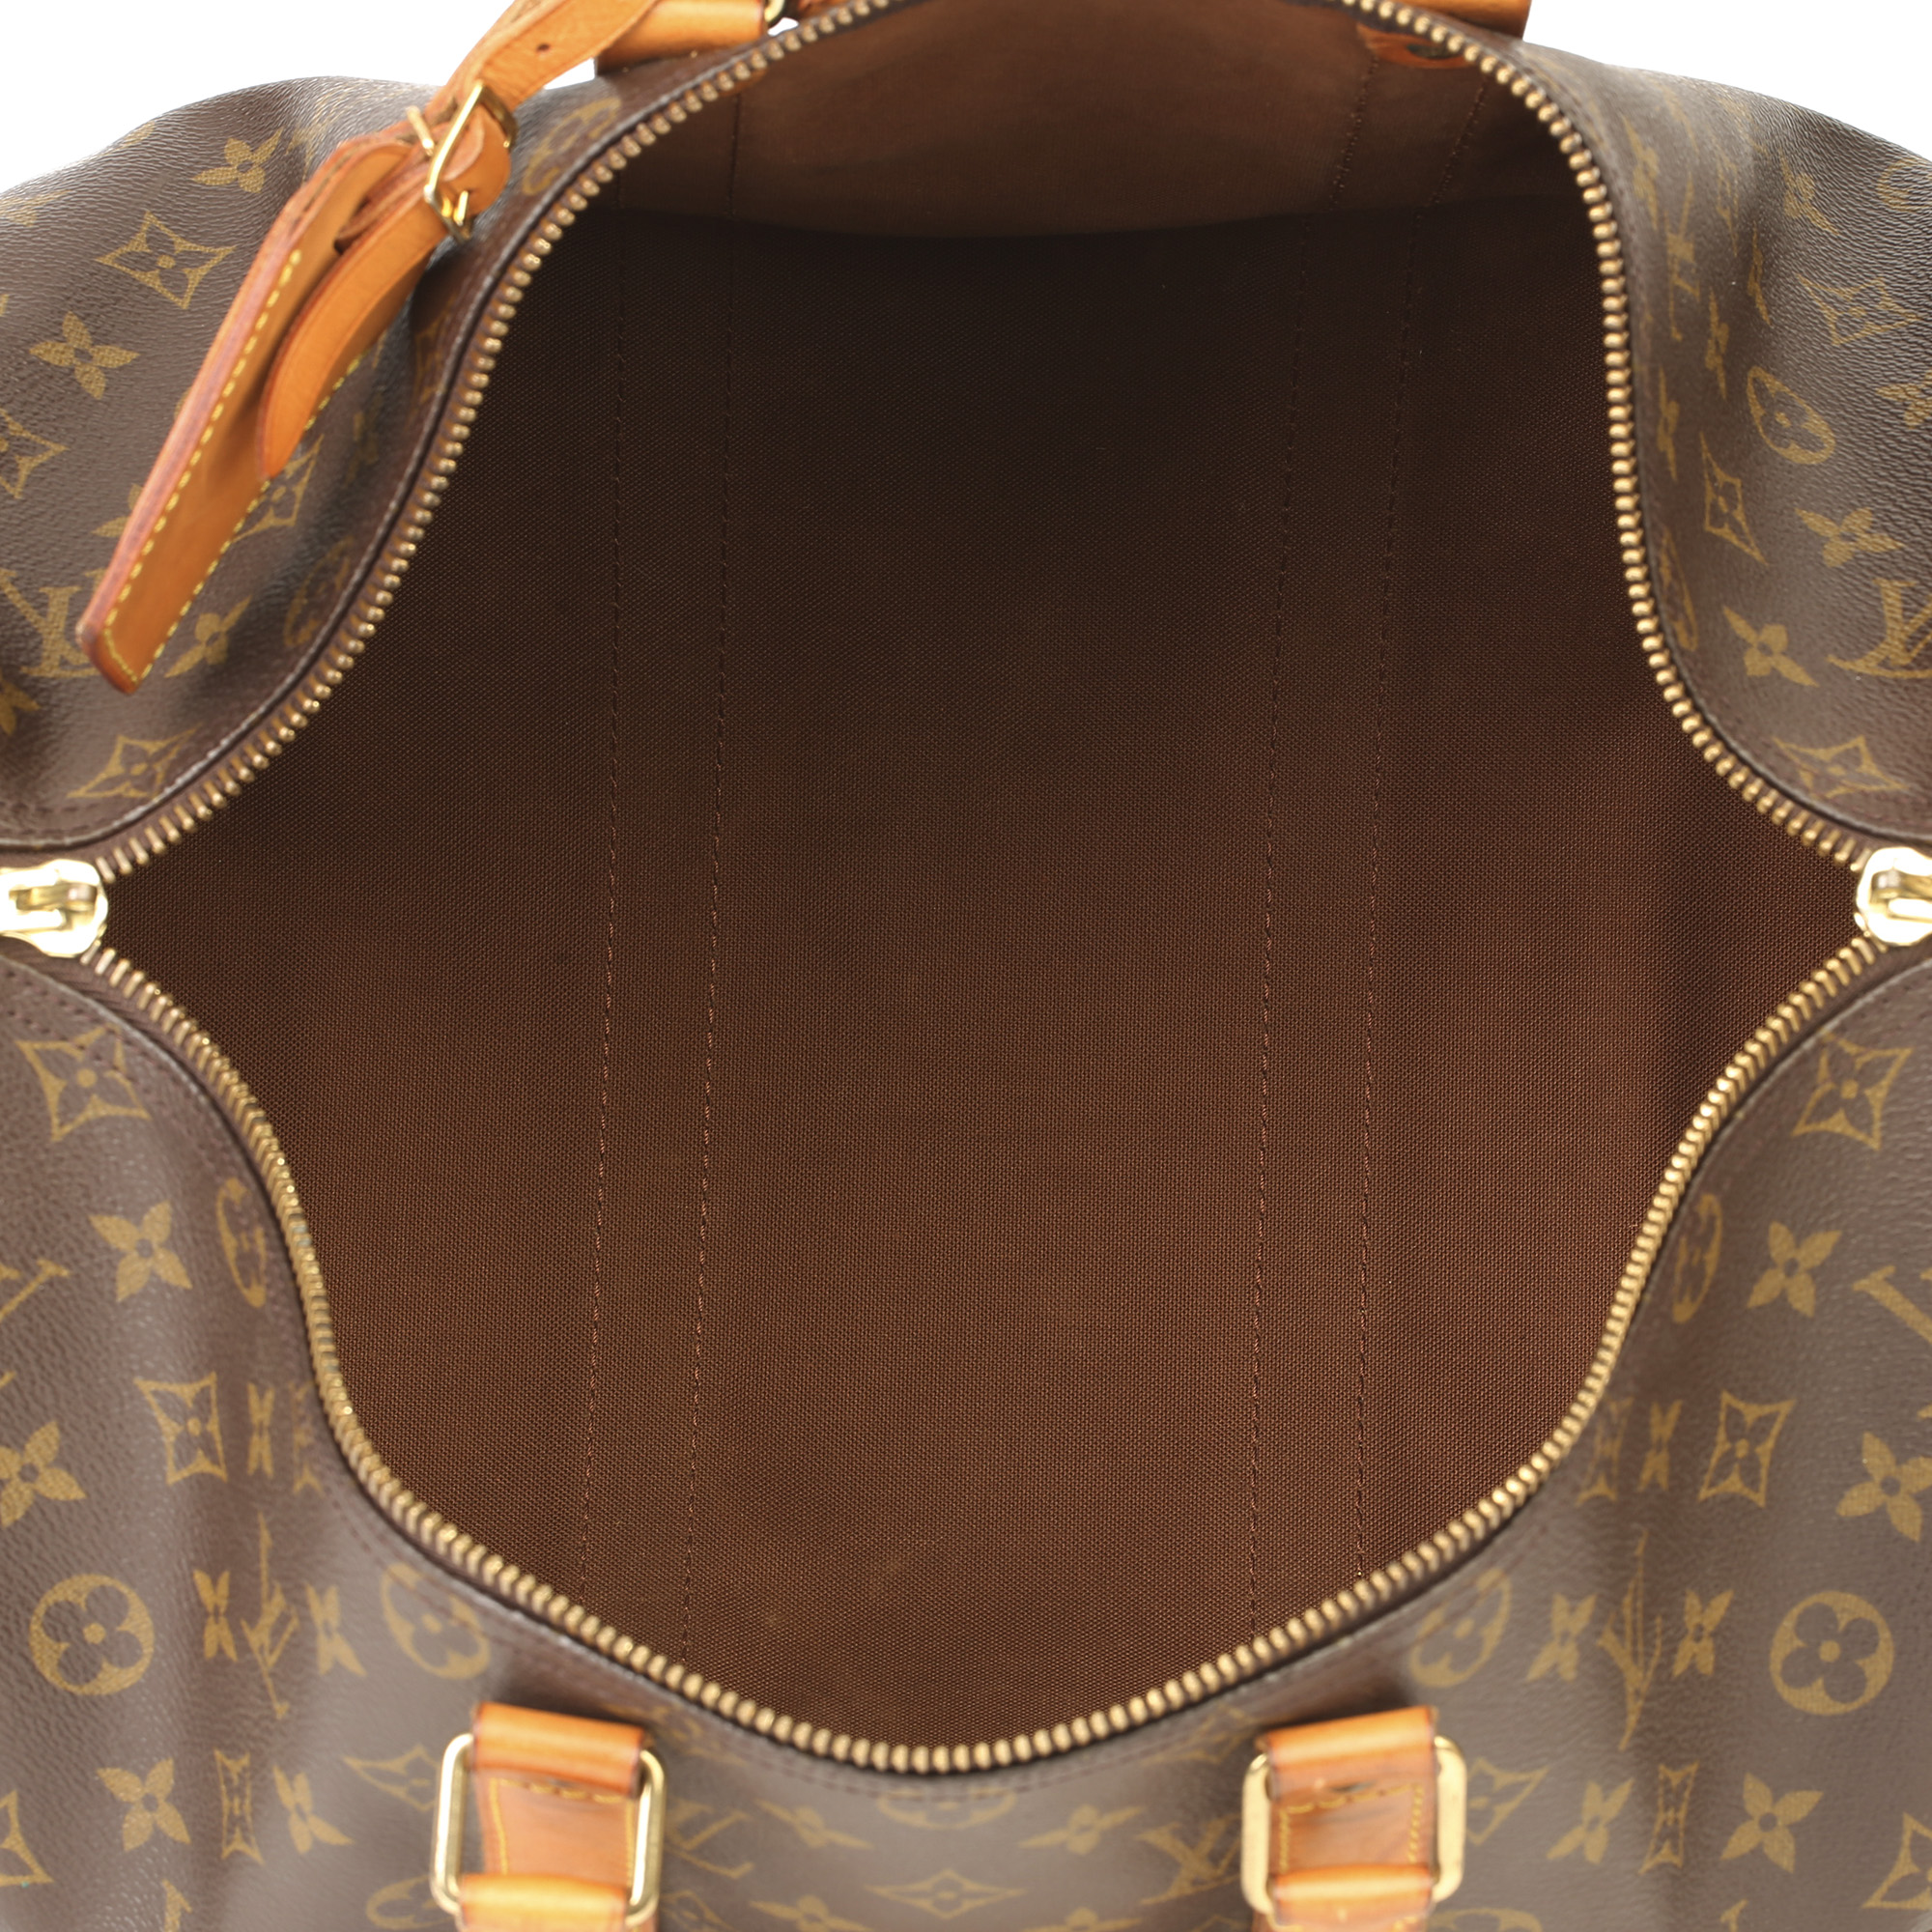 Louis Vuitton Brown Monogram Coated Canvas & Vachetta Leather Vintage Keepall 45 Bandoulire - Image 3 of 13